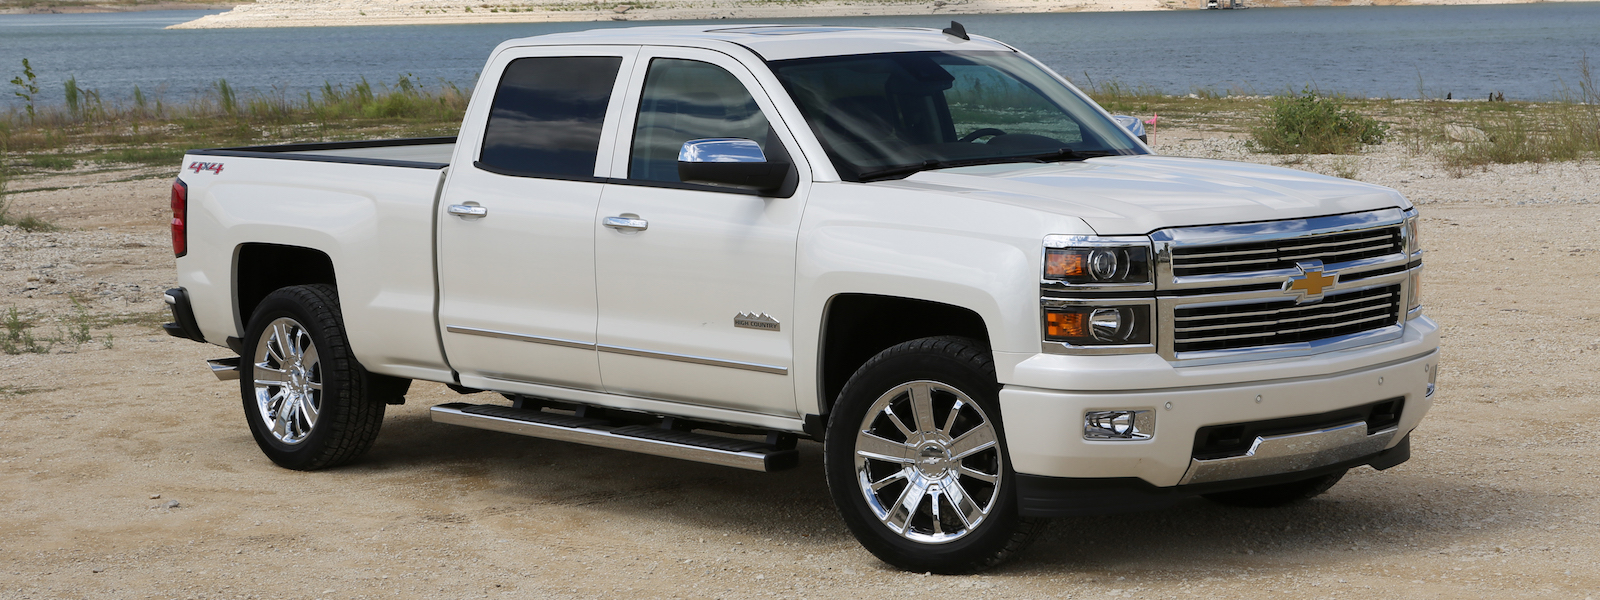 Rugged and Reliable Certified Chevy